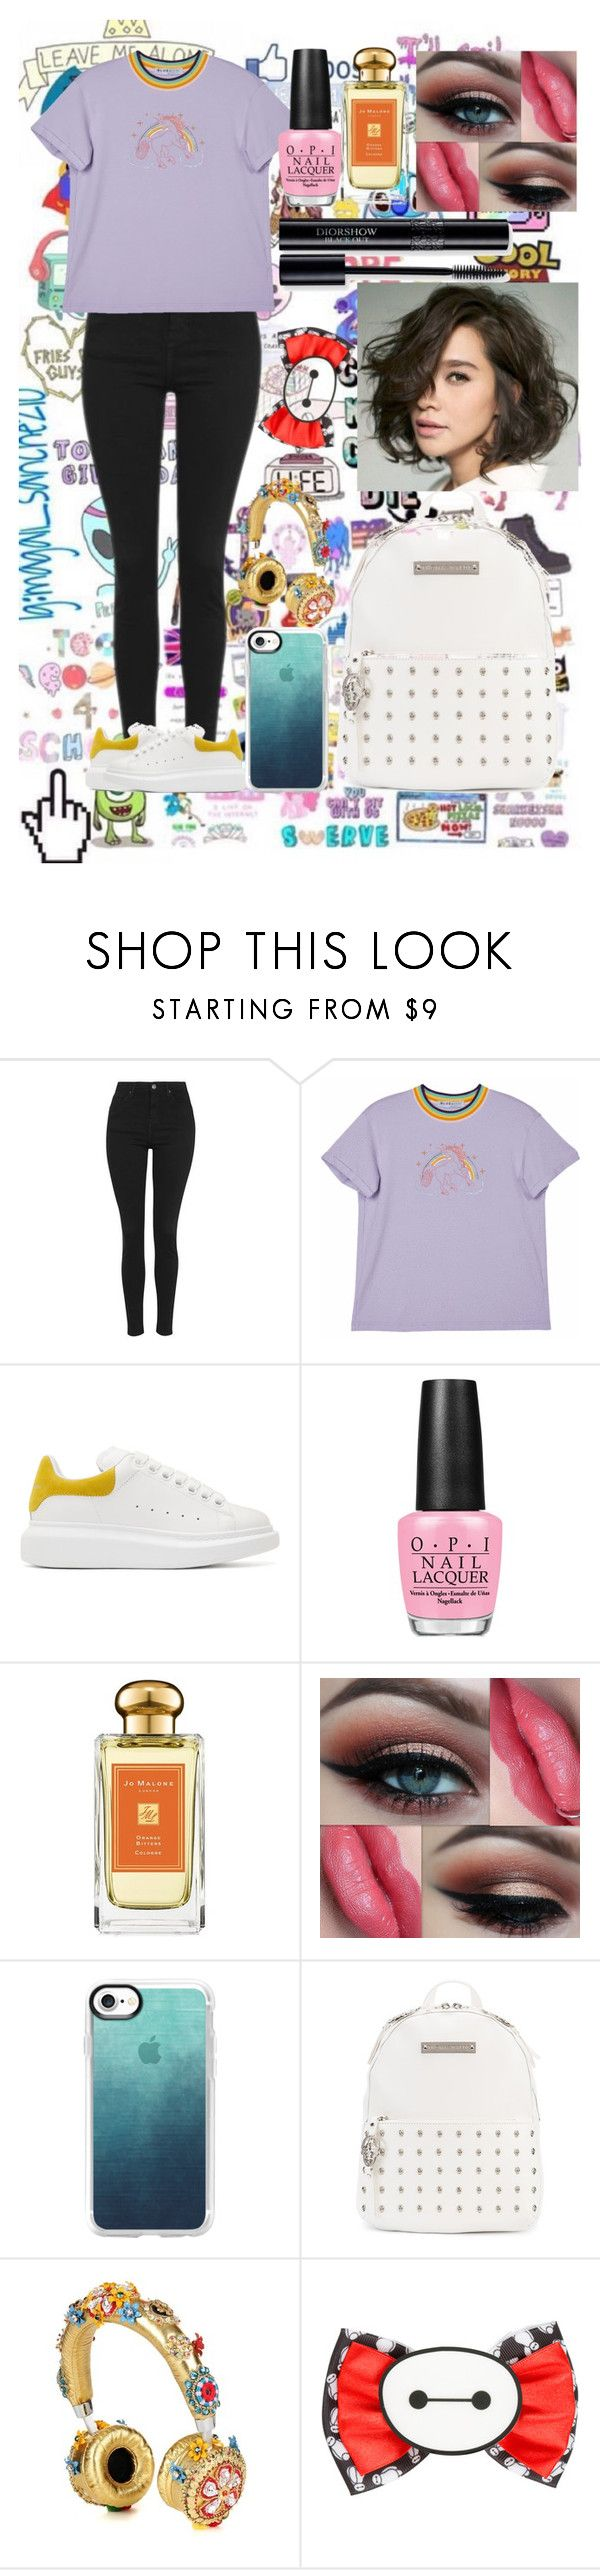 """""""School Ready"""" by nicoledesigner on Polyvore featuring Topshop, Alexander McQueen, OPI, Jo Malone, Casetify, Thomas Wylde, Dolce&Gabbana and Disney"""